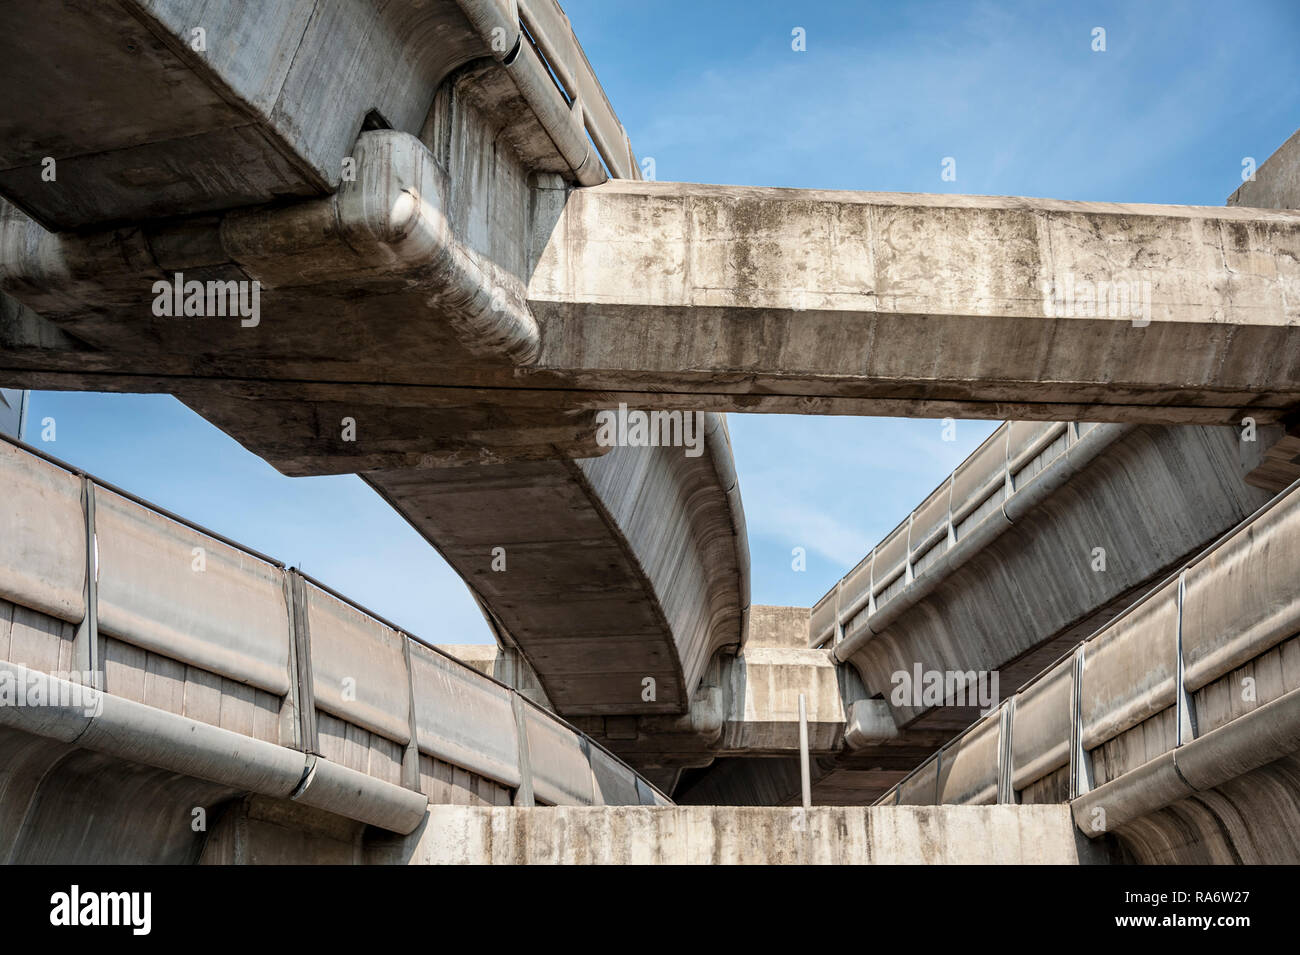 large and imposing concrete overpasses against a blue sky, Bangkok Thailand - Stock Image